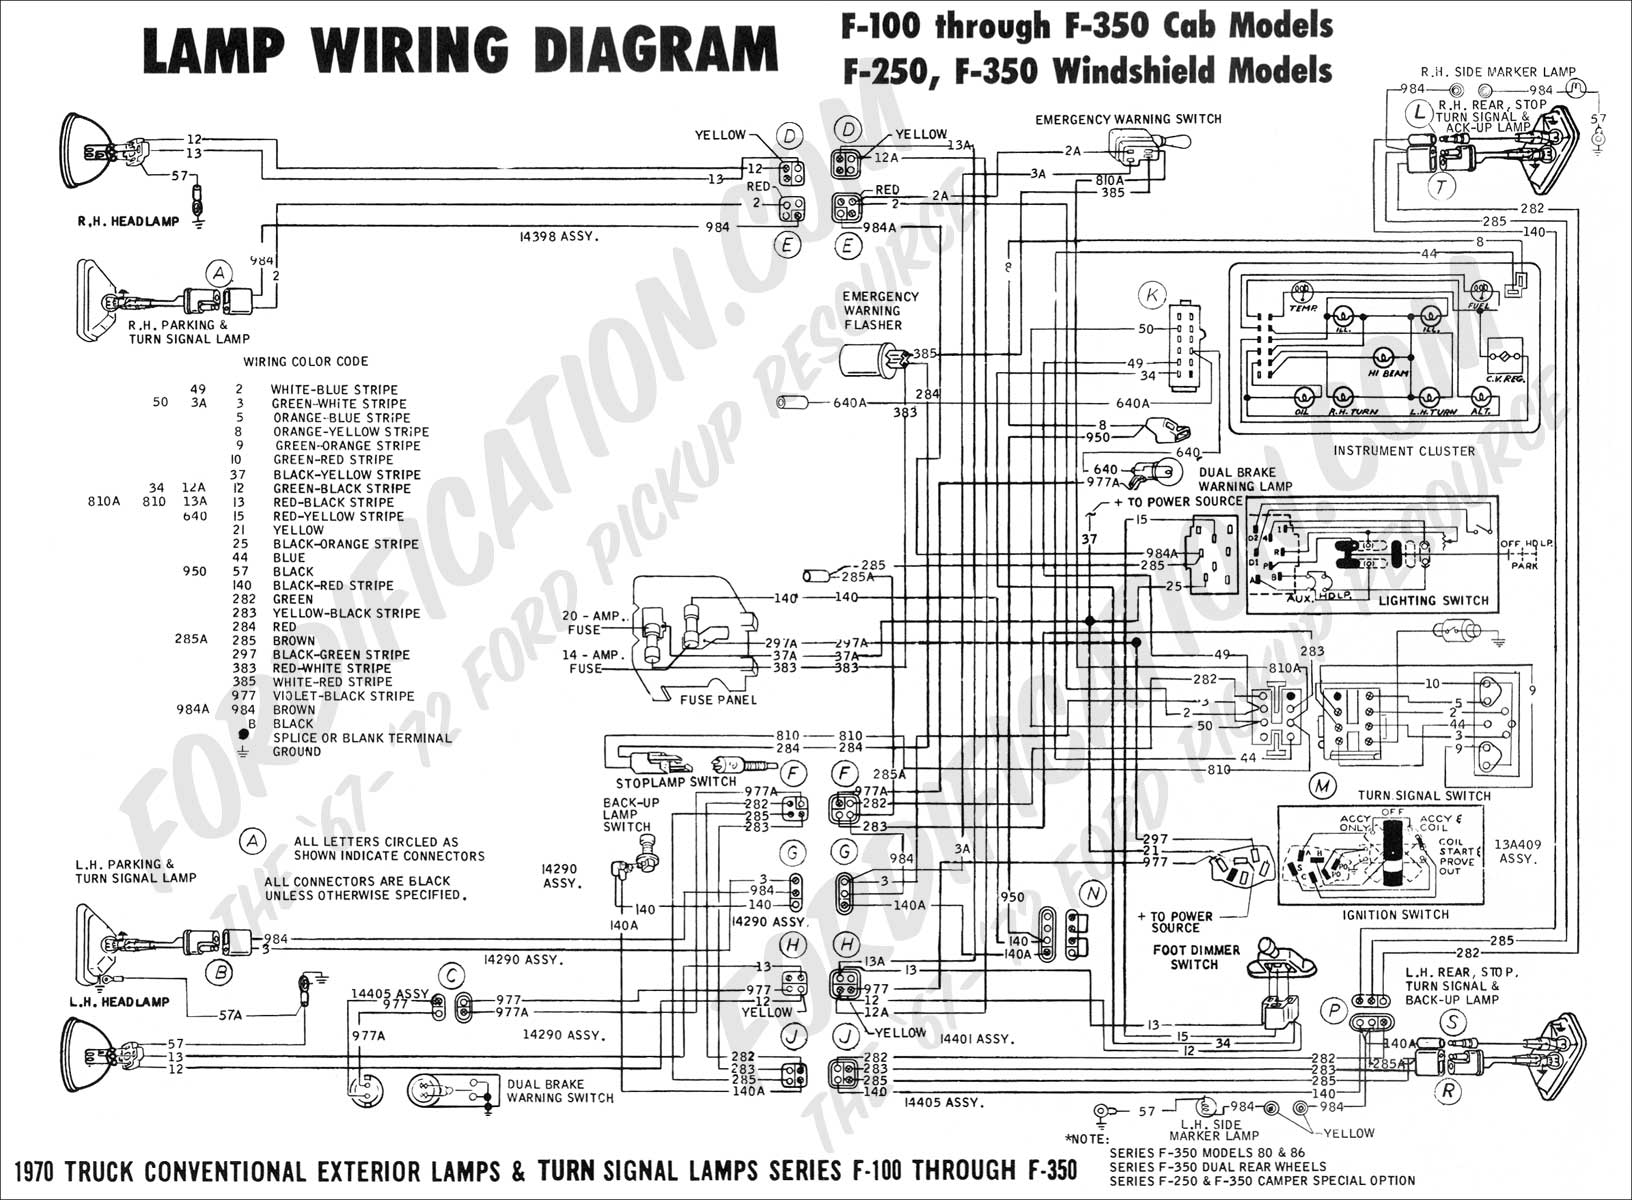 wiring diagram_70ext lights01 ford f250 wiring diagram online f250 trailer wiring diagram 2015 ford f150 trailer wiring diagram at virtualis.co